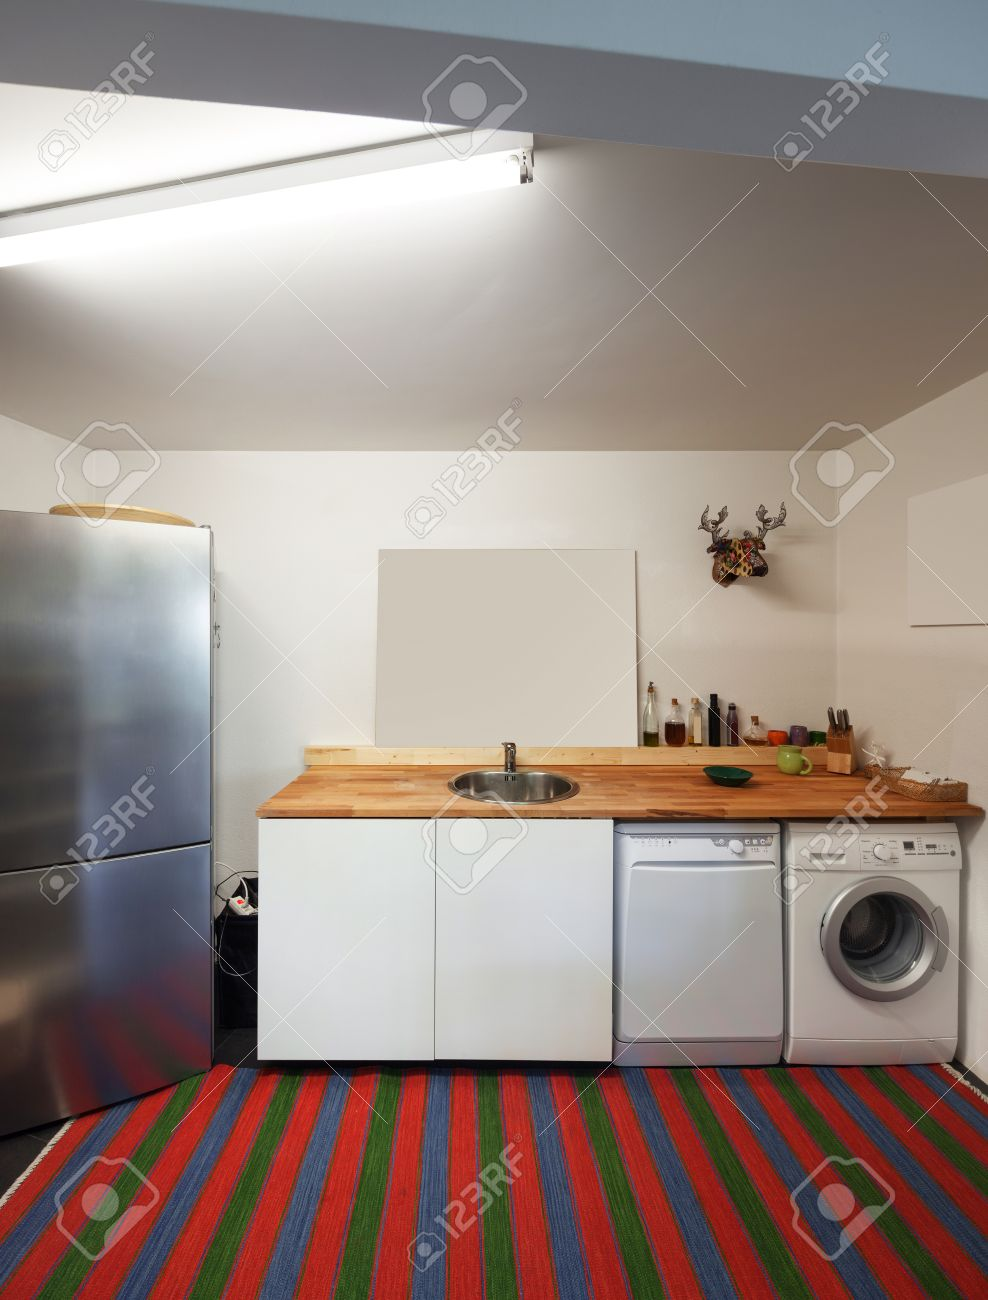 Küche L Form Mit Waschmaschine Interior Of Apartment Kitchen With Washing Machine And Dishwasher